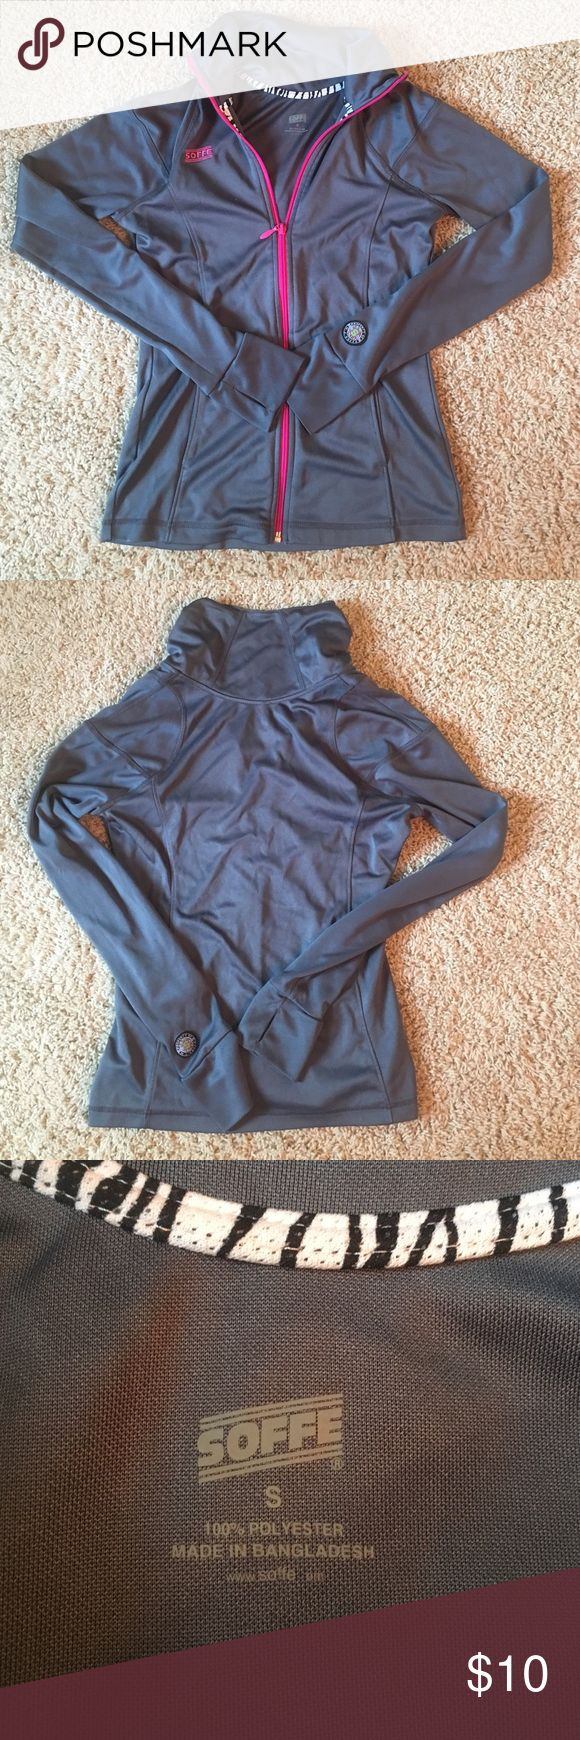 Zip up athletic jacket Grey zip up. 100% polyester great condition. Like new Soffe Jackets & Coats